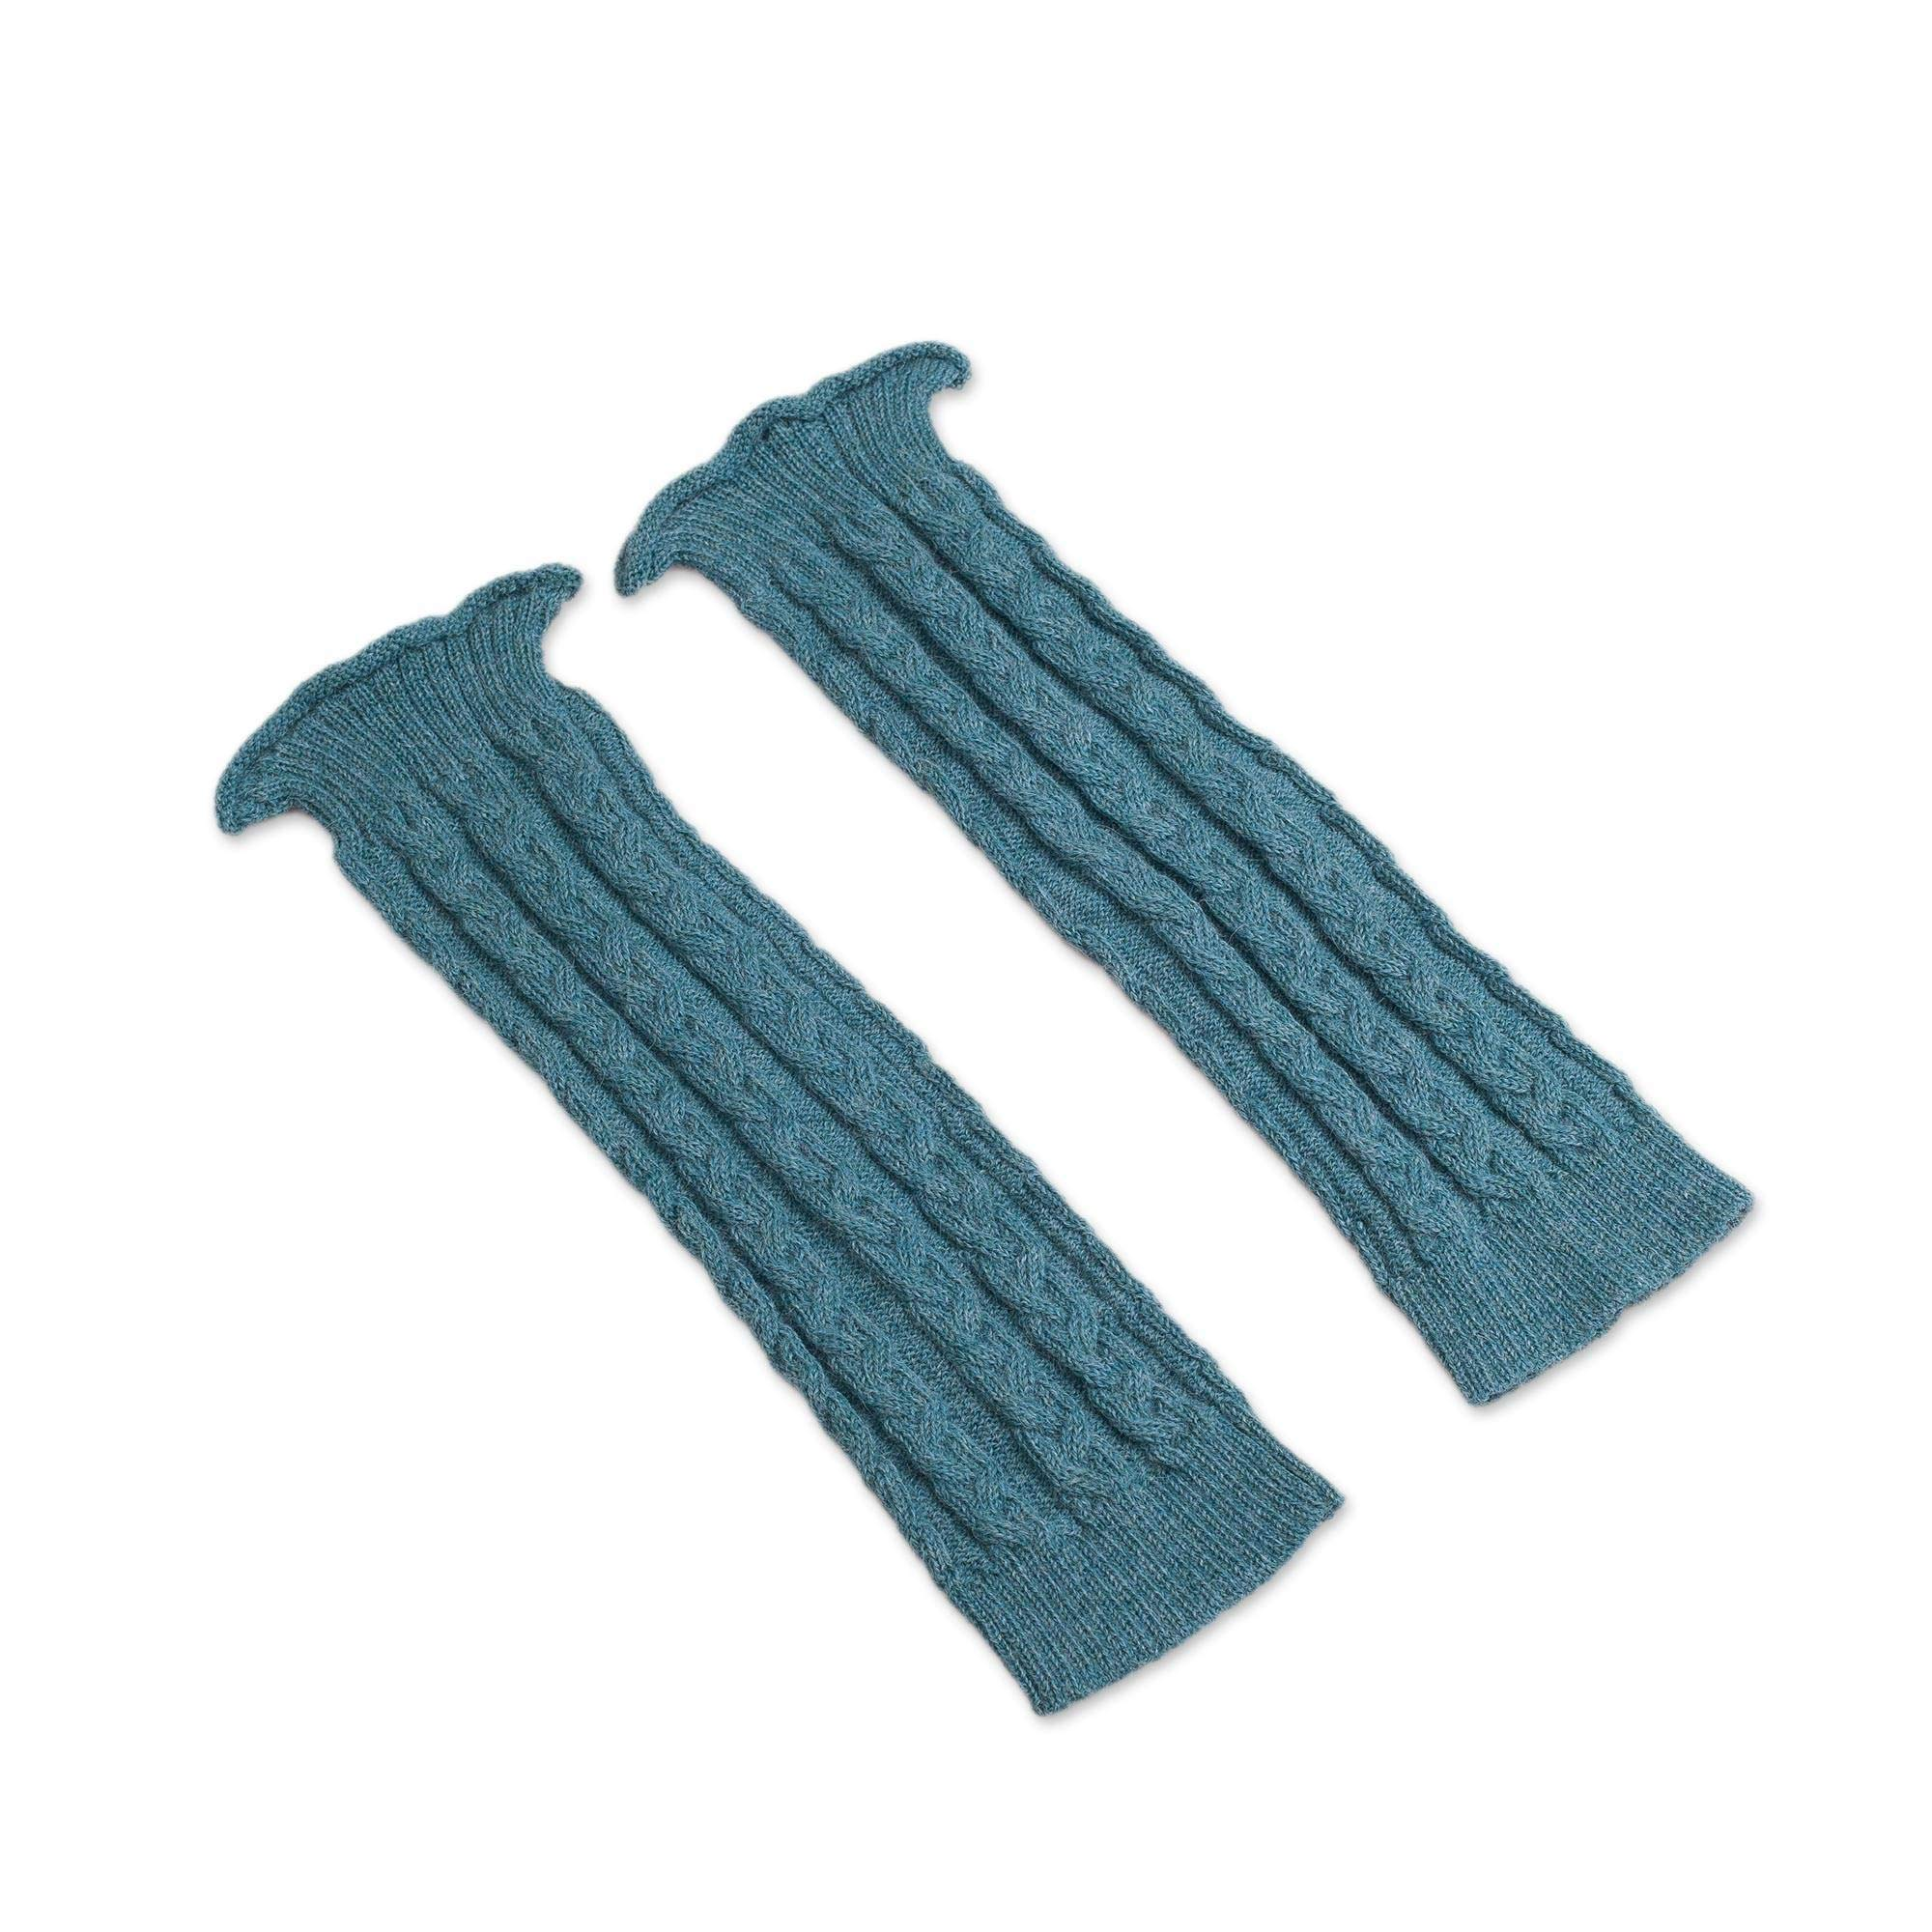 NOVICA Turquoise Blue 100% Alpaca Leg Warmers, Cozy Cables in Turquoise' by NOVICA